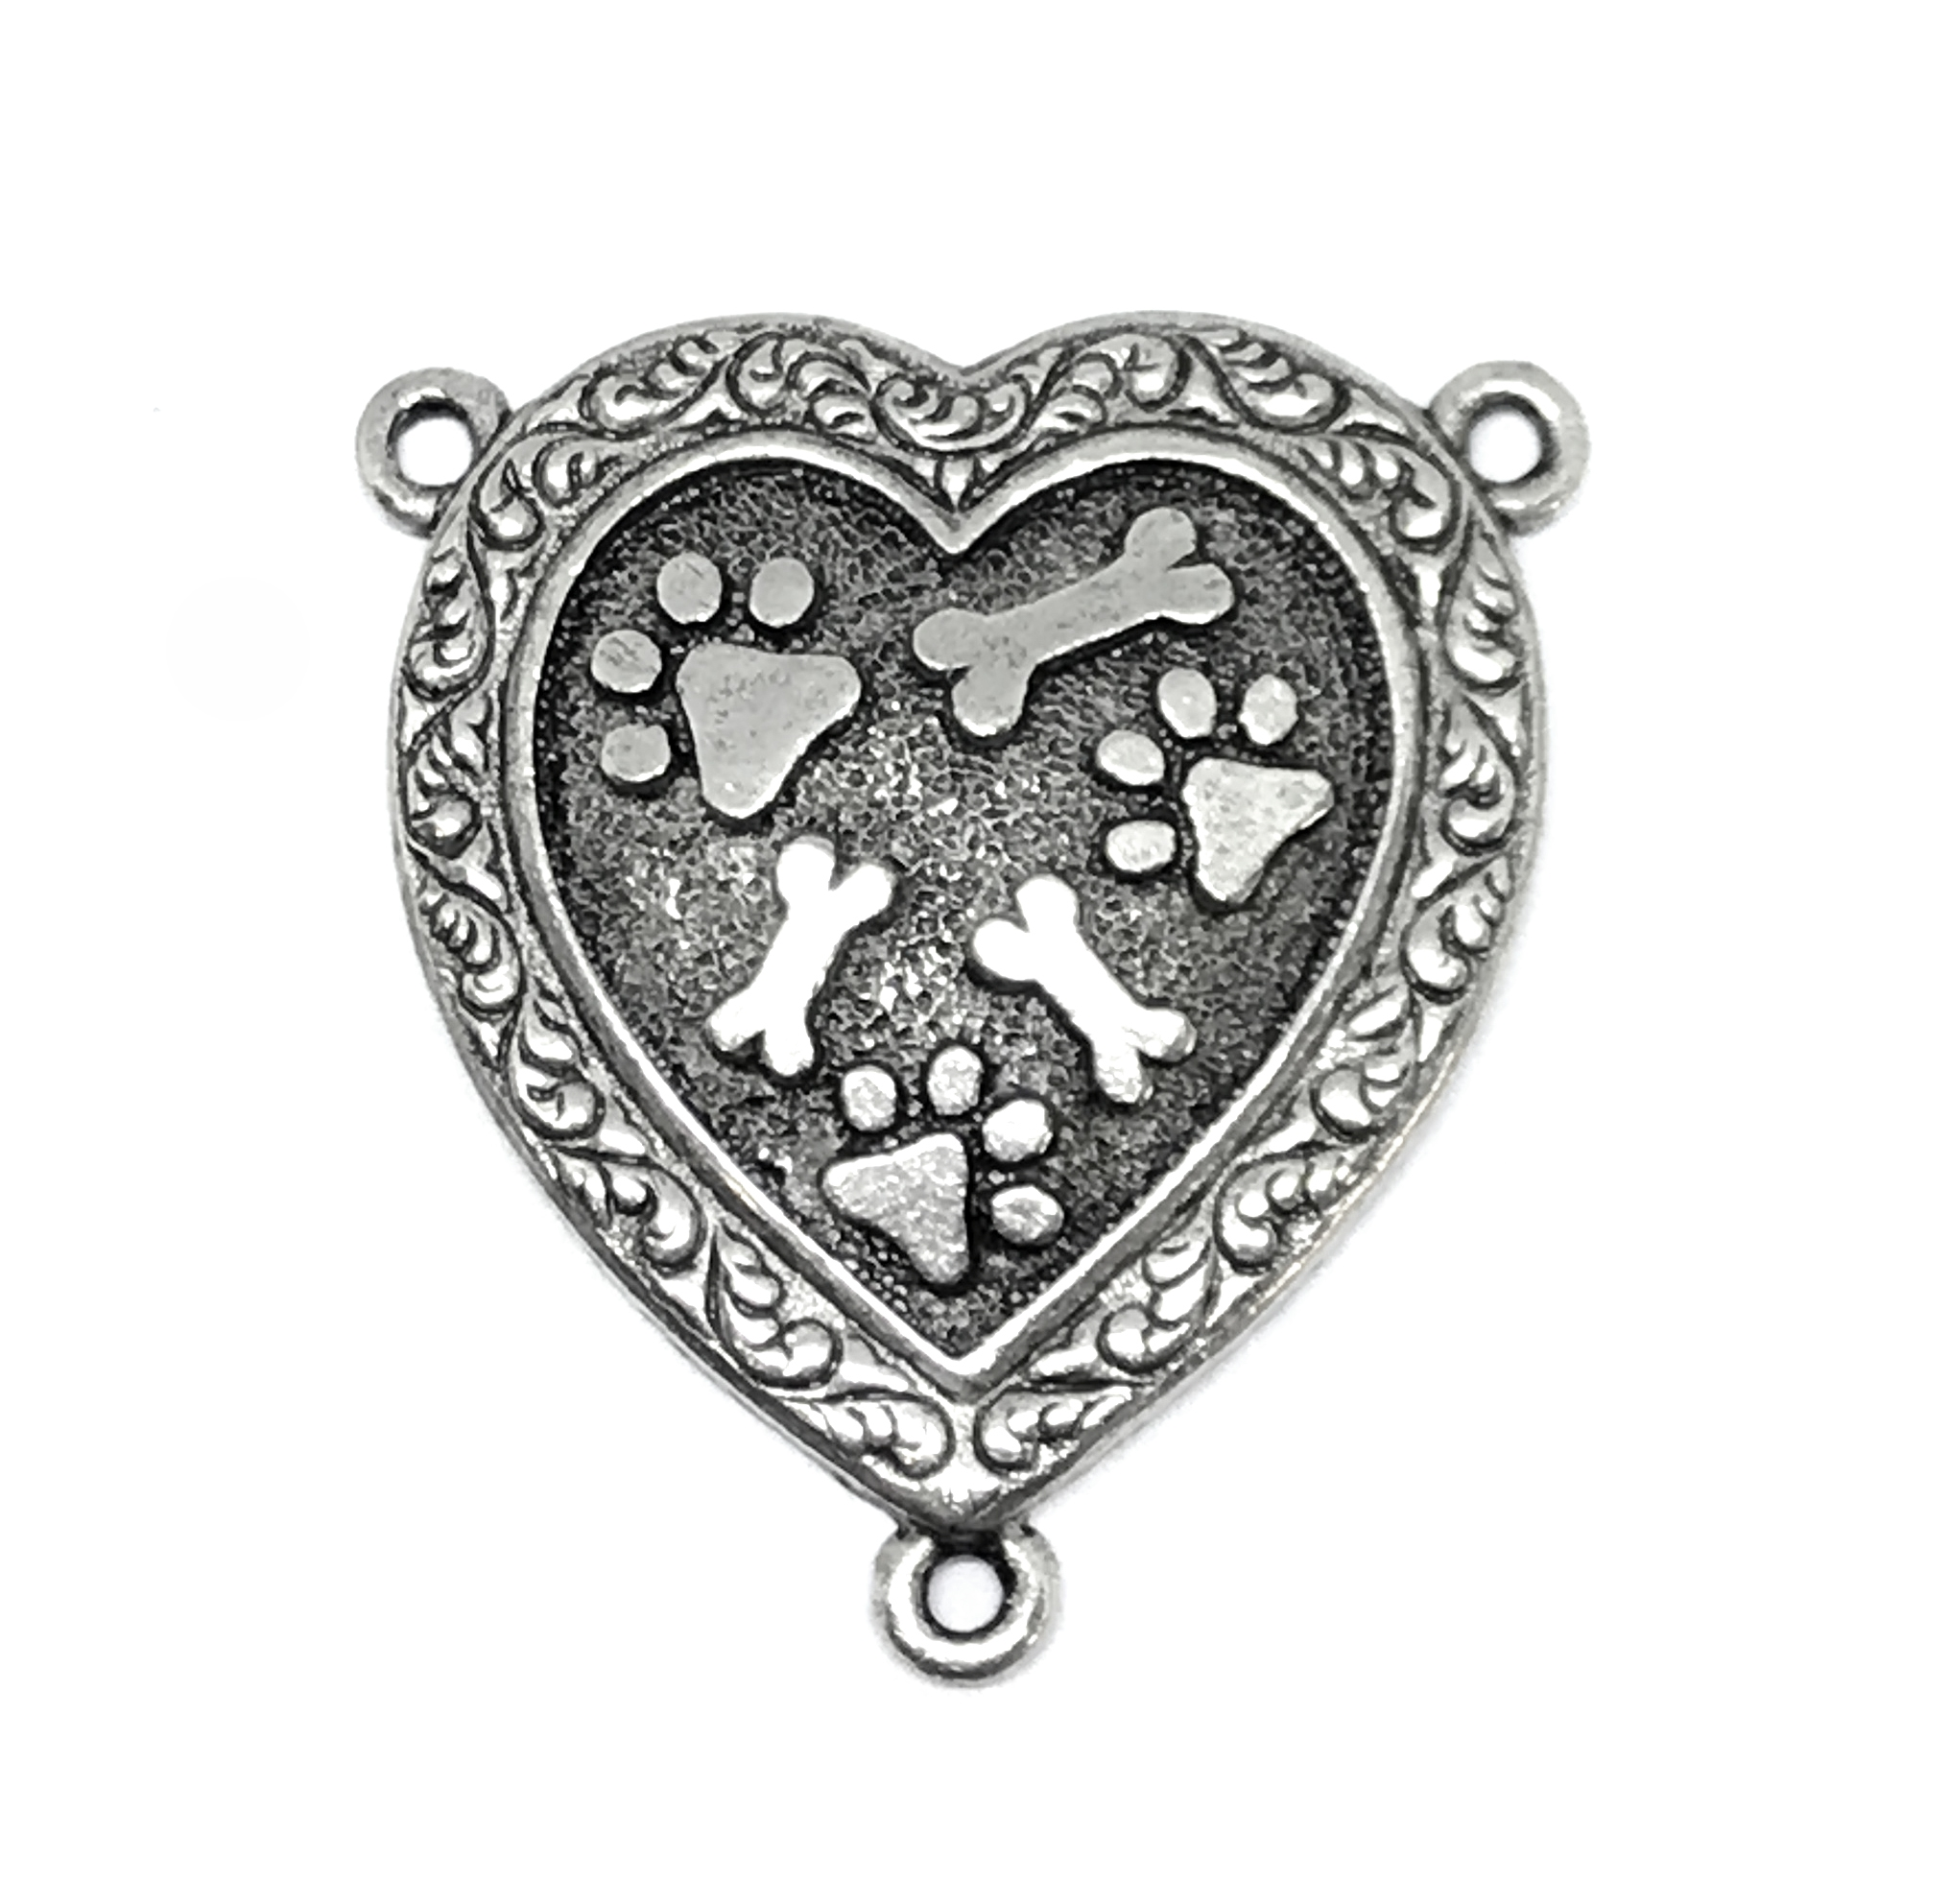 1928 Jewelry, old silver paw print heart pendant, old silver, pet necklace, dog jewelry, animal style jewelry, puppy, B'sue Boutiques, paw print pendant, 1928 Jewelry Company, B'sue by 1928, dog pendant, dog, 01414